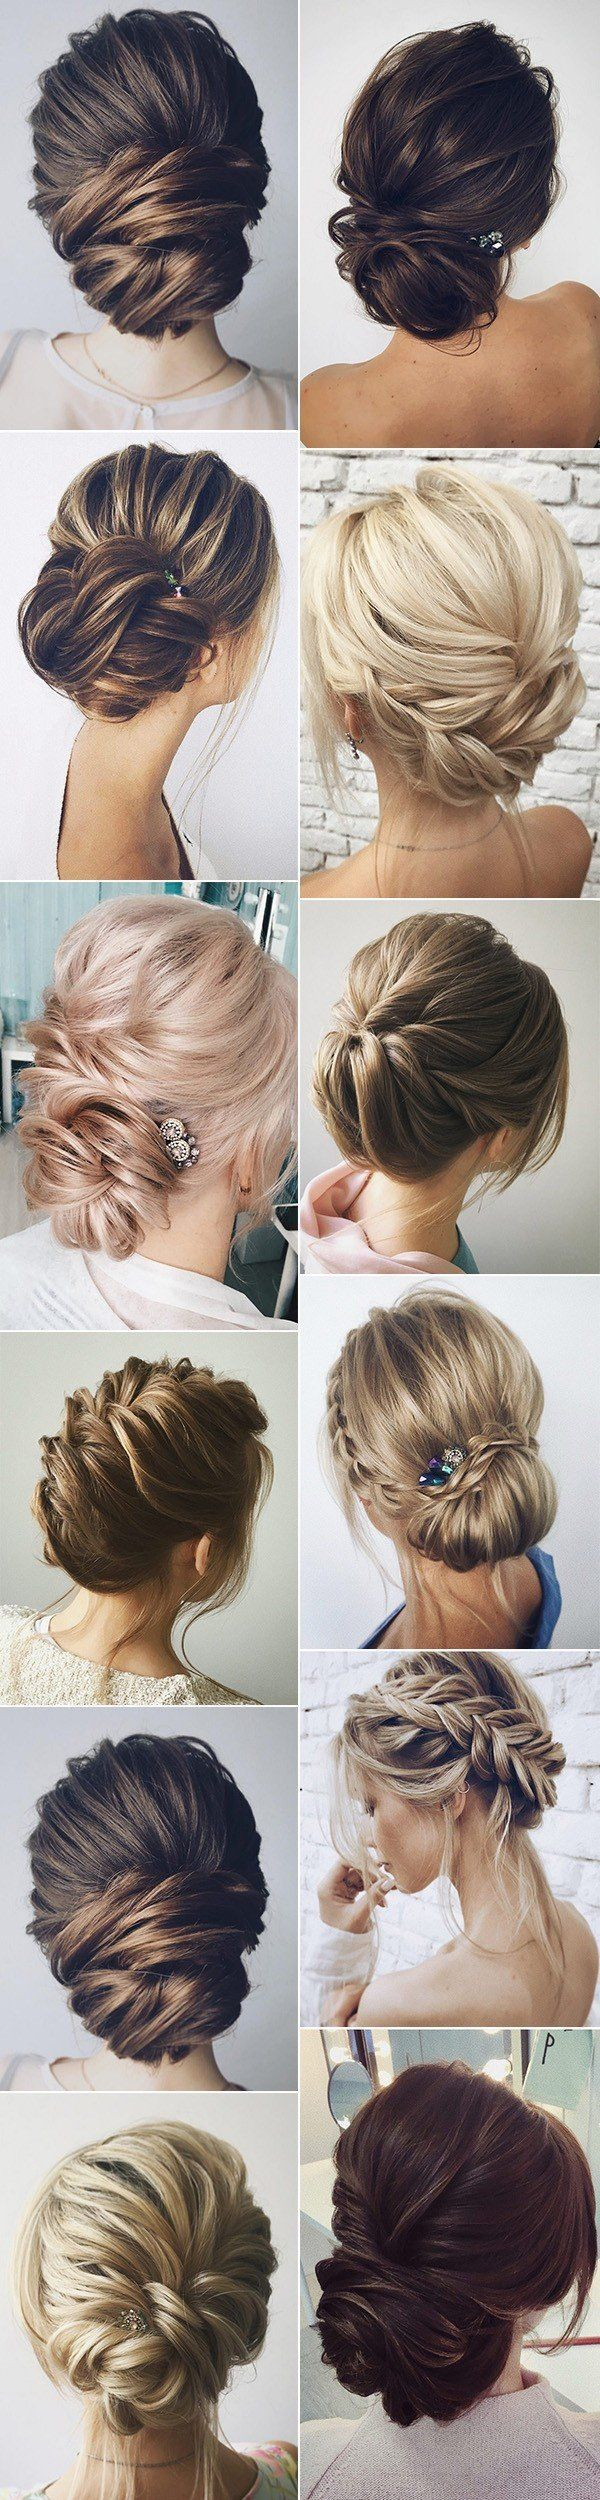 Wedding updos were the top hairstyle pi ... - #the #elegant #douch hairstyles #wedding #pi